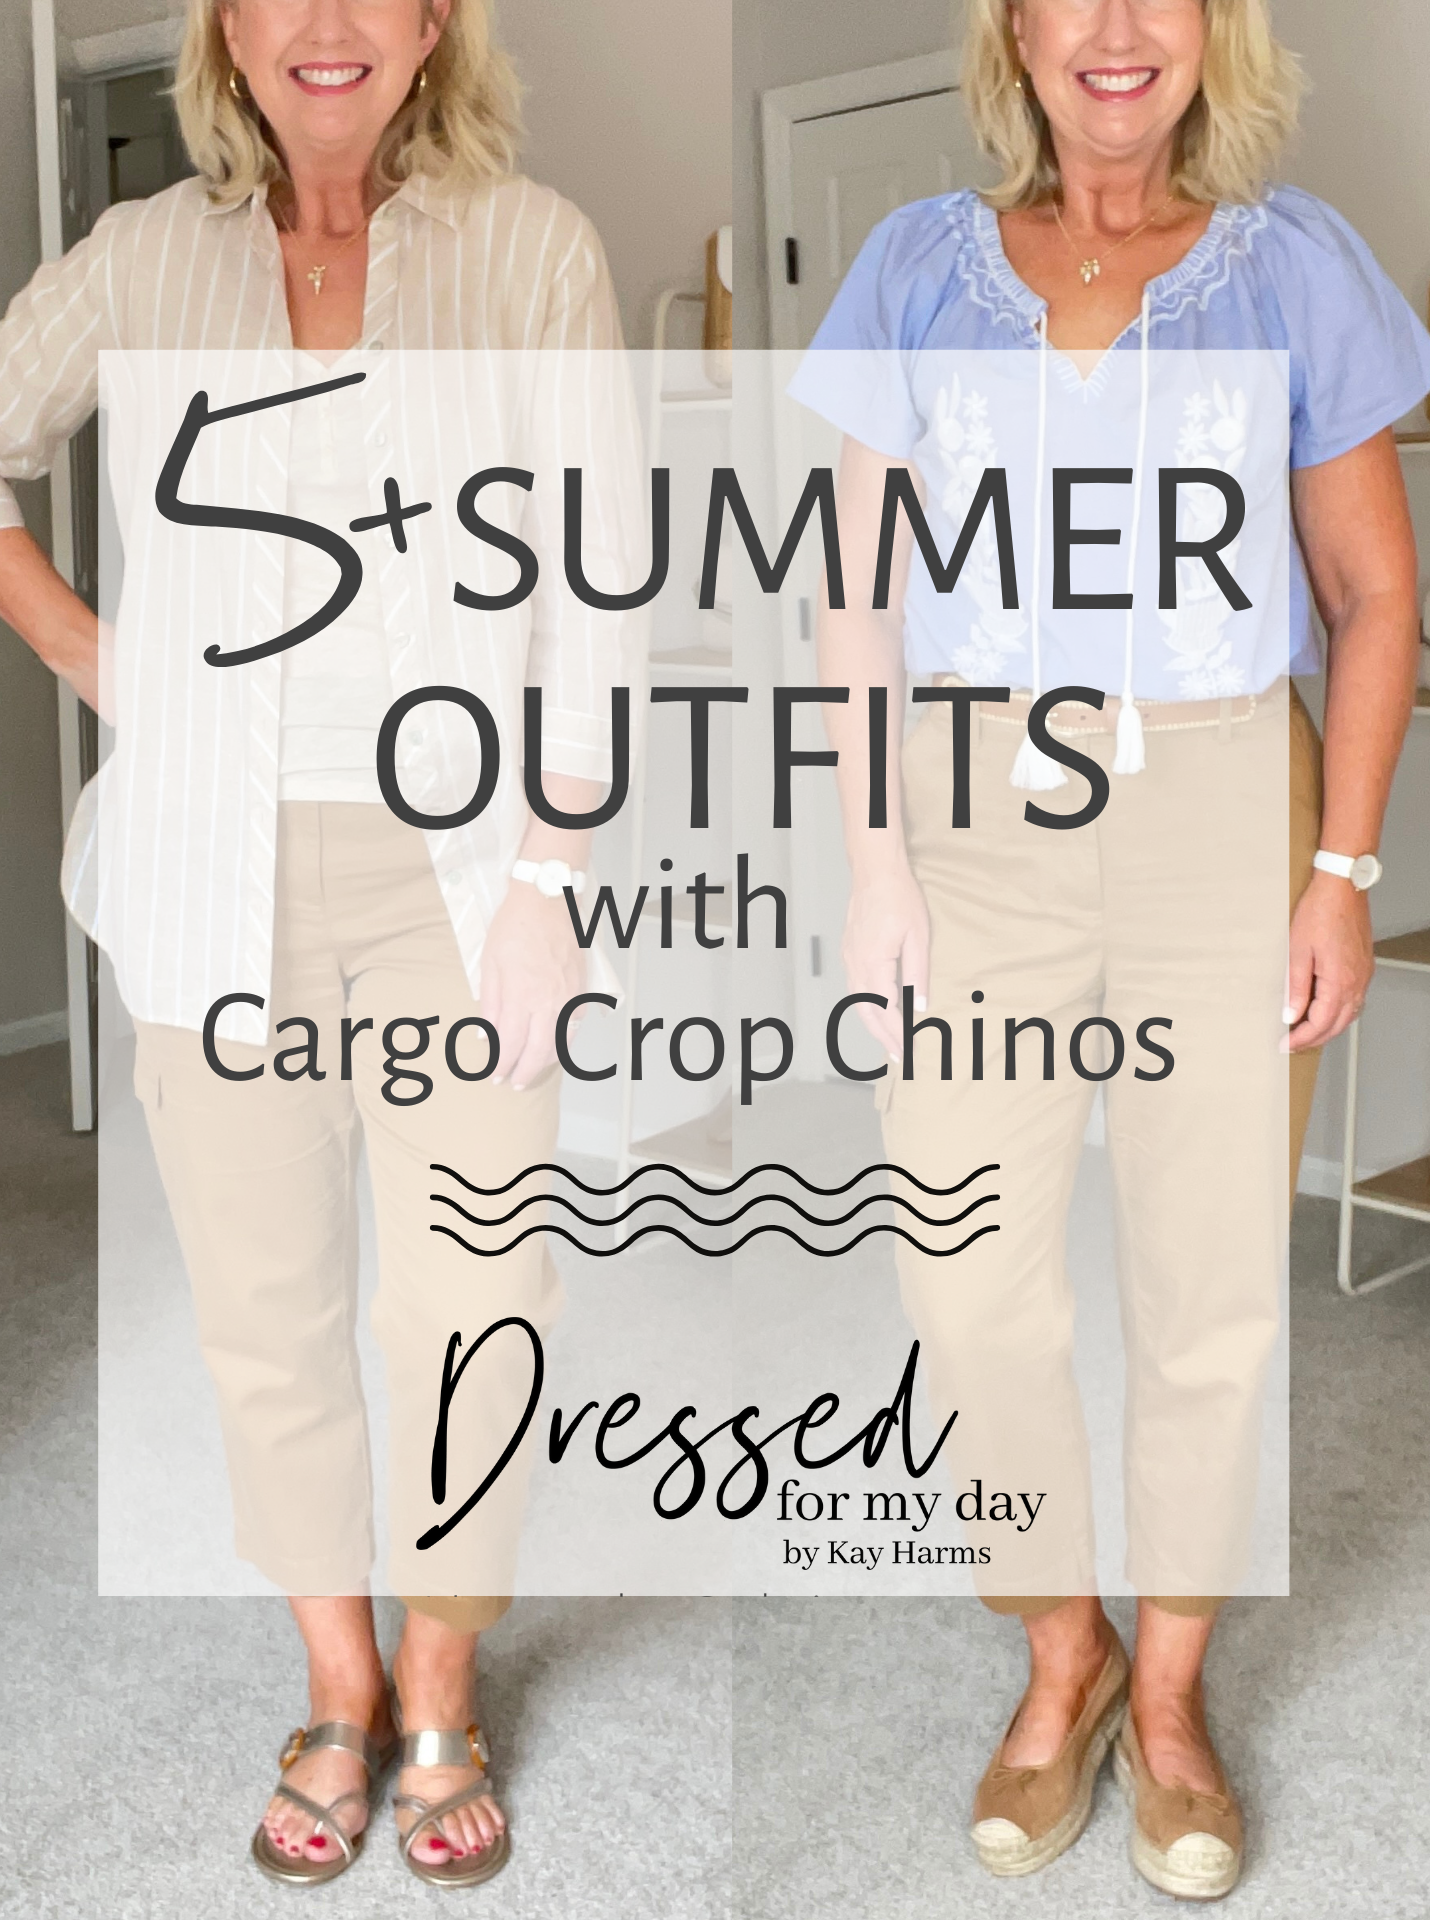 5+ Summer Outfits with Cargo Crop Chinos